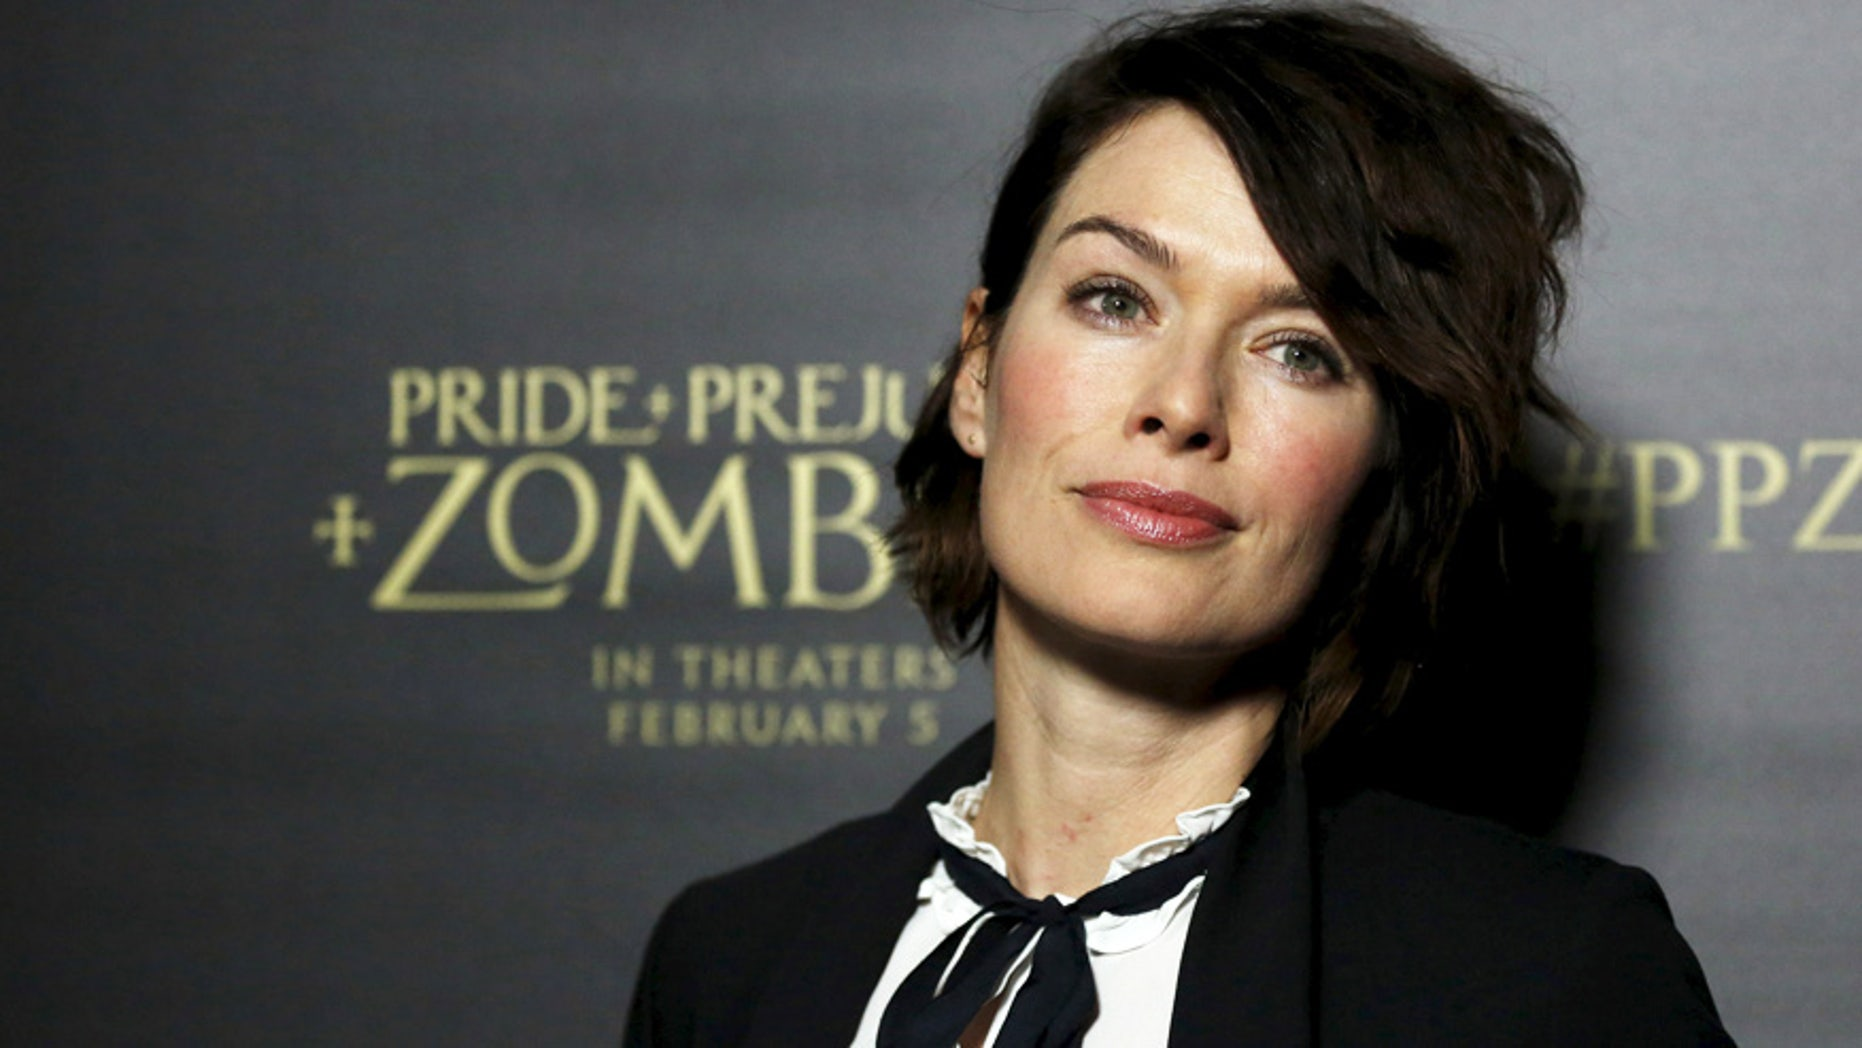 'Game of Thrones' actress Lena Headey recently detailed her uncomfortable encounter with Harvey Weinstein.